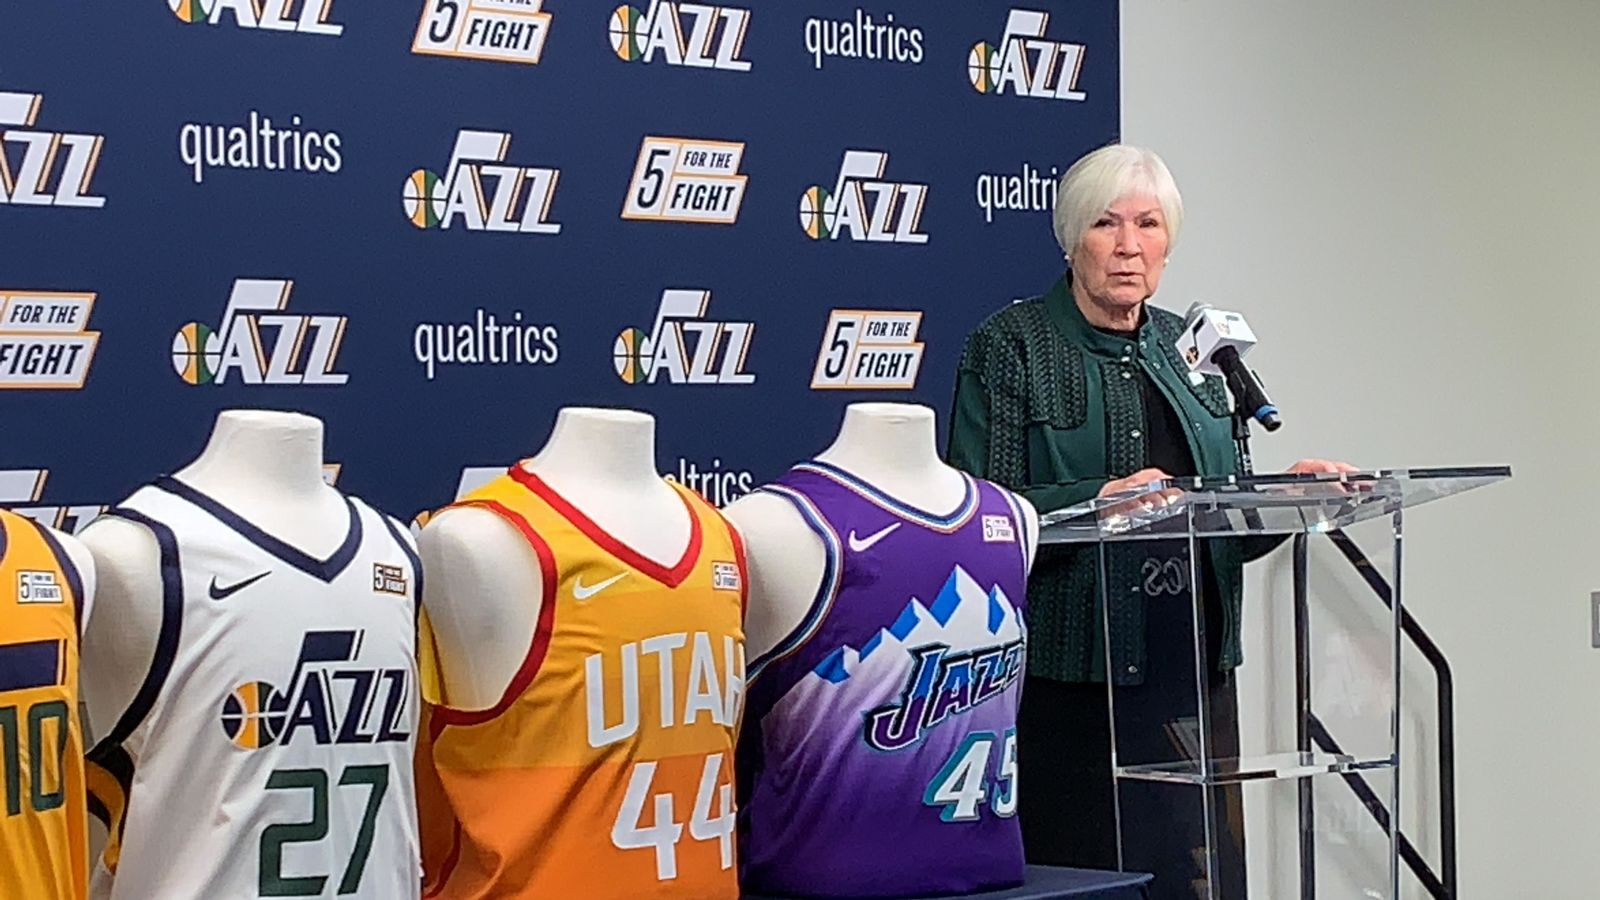 Gail Miller speaks at a press conference on Monday, October 21, 2019. (Photo: Adam Forgie, KUTV)